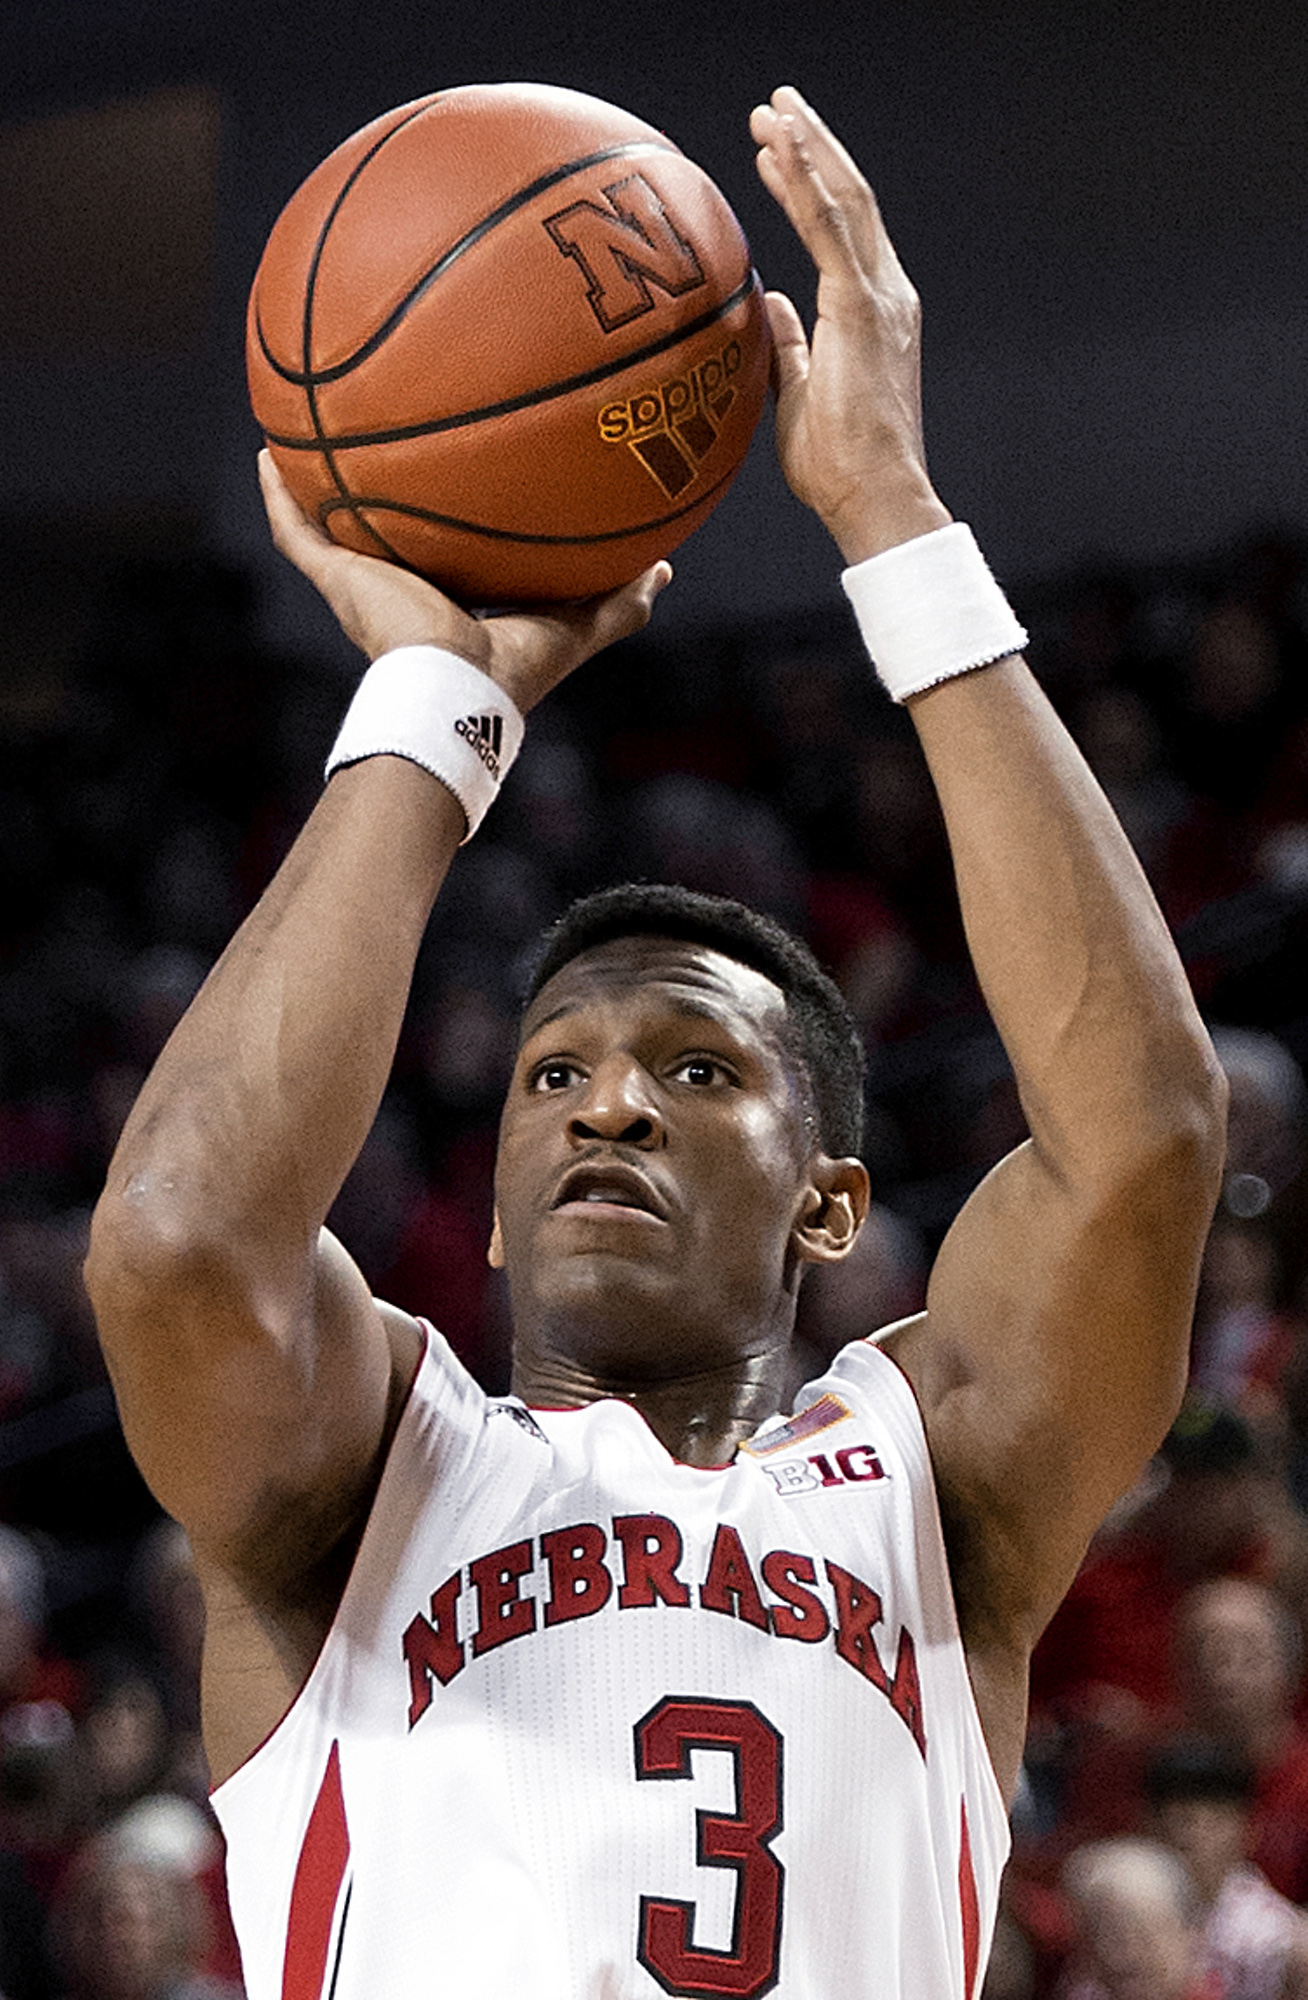 FILE - In this Jan. 2, 2016, file photo, Nebraska guard Andrew White shoots during the second half of an NCAA college basketball game against Indiana in Lincoln, Neb. White is declaring for the NBA draft, but he's not hiring an agent so he can maintain hi